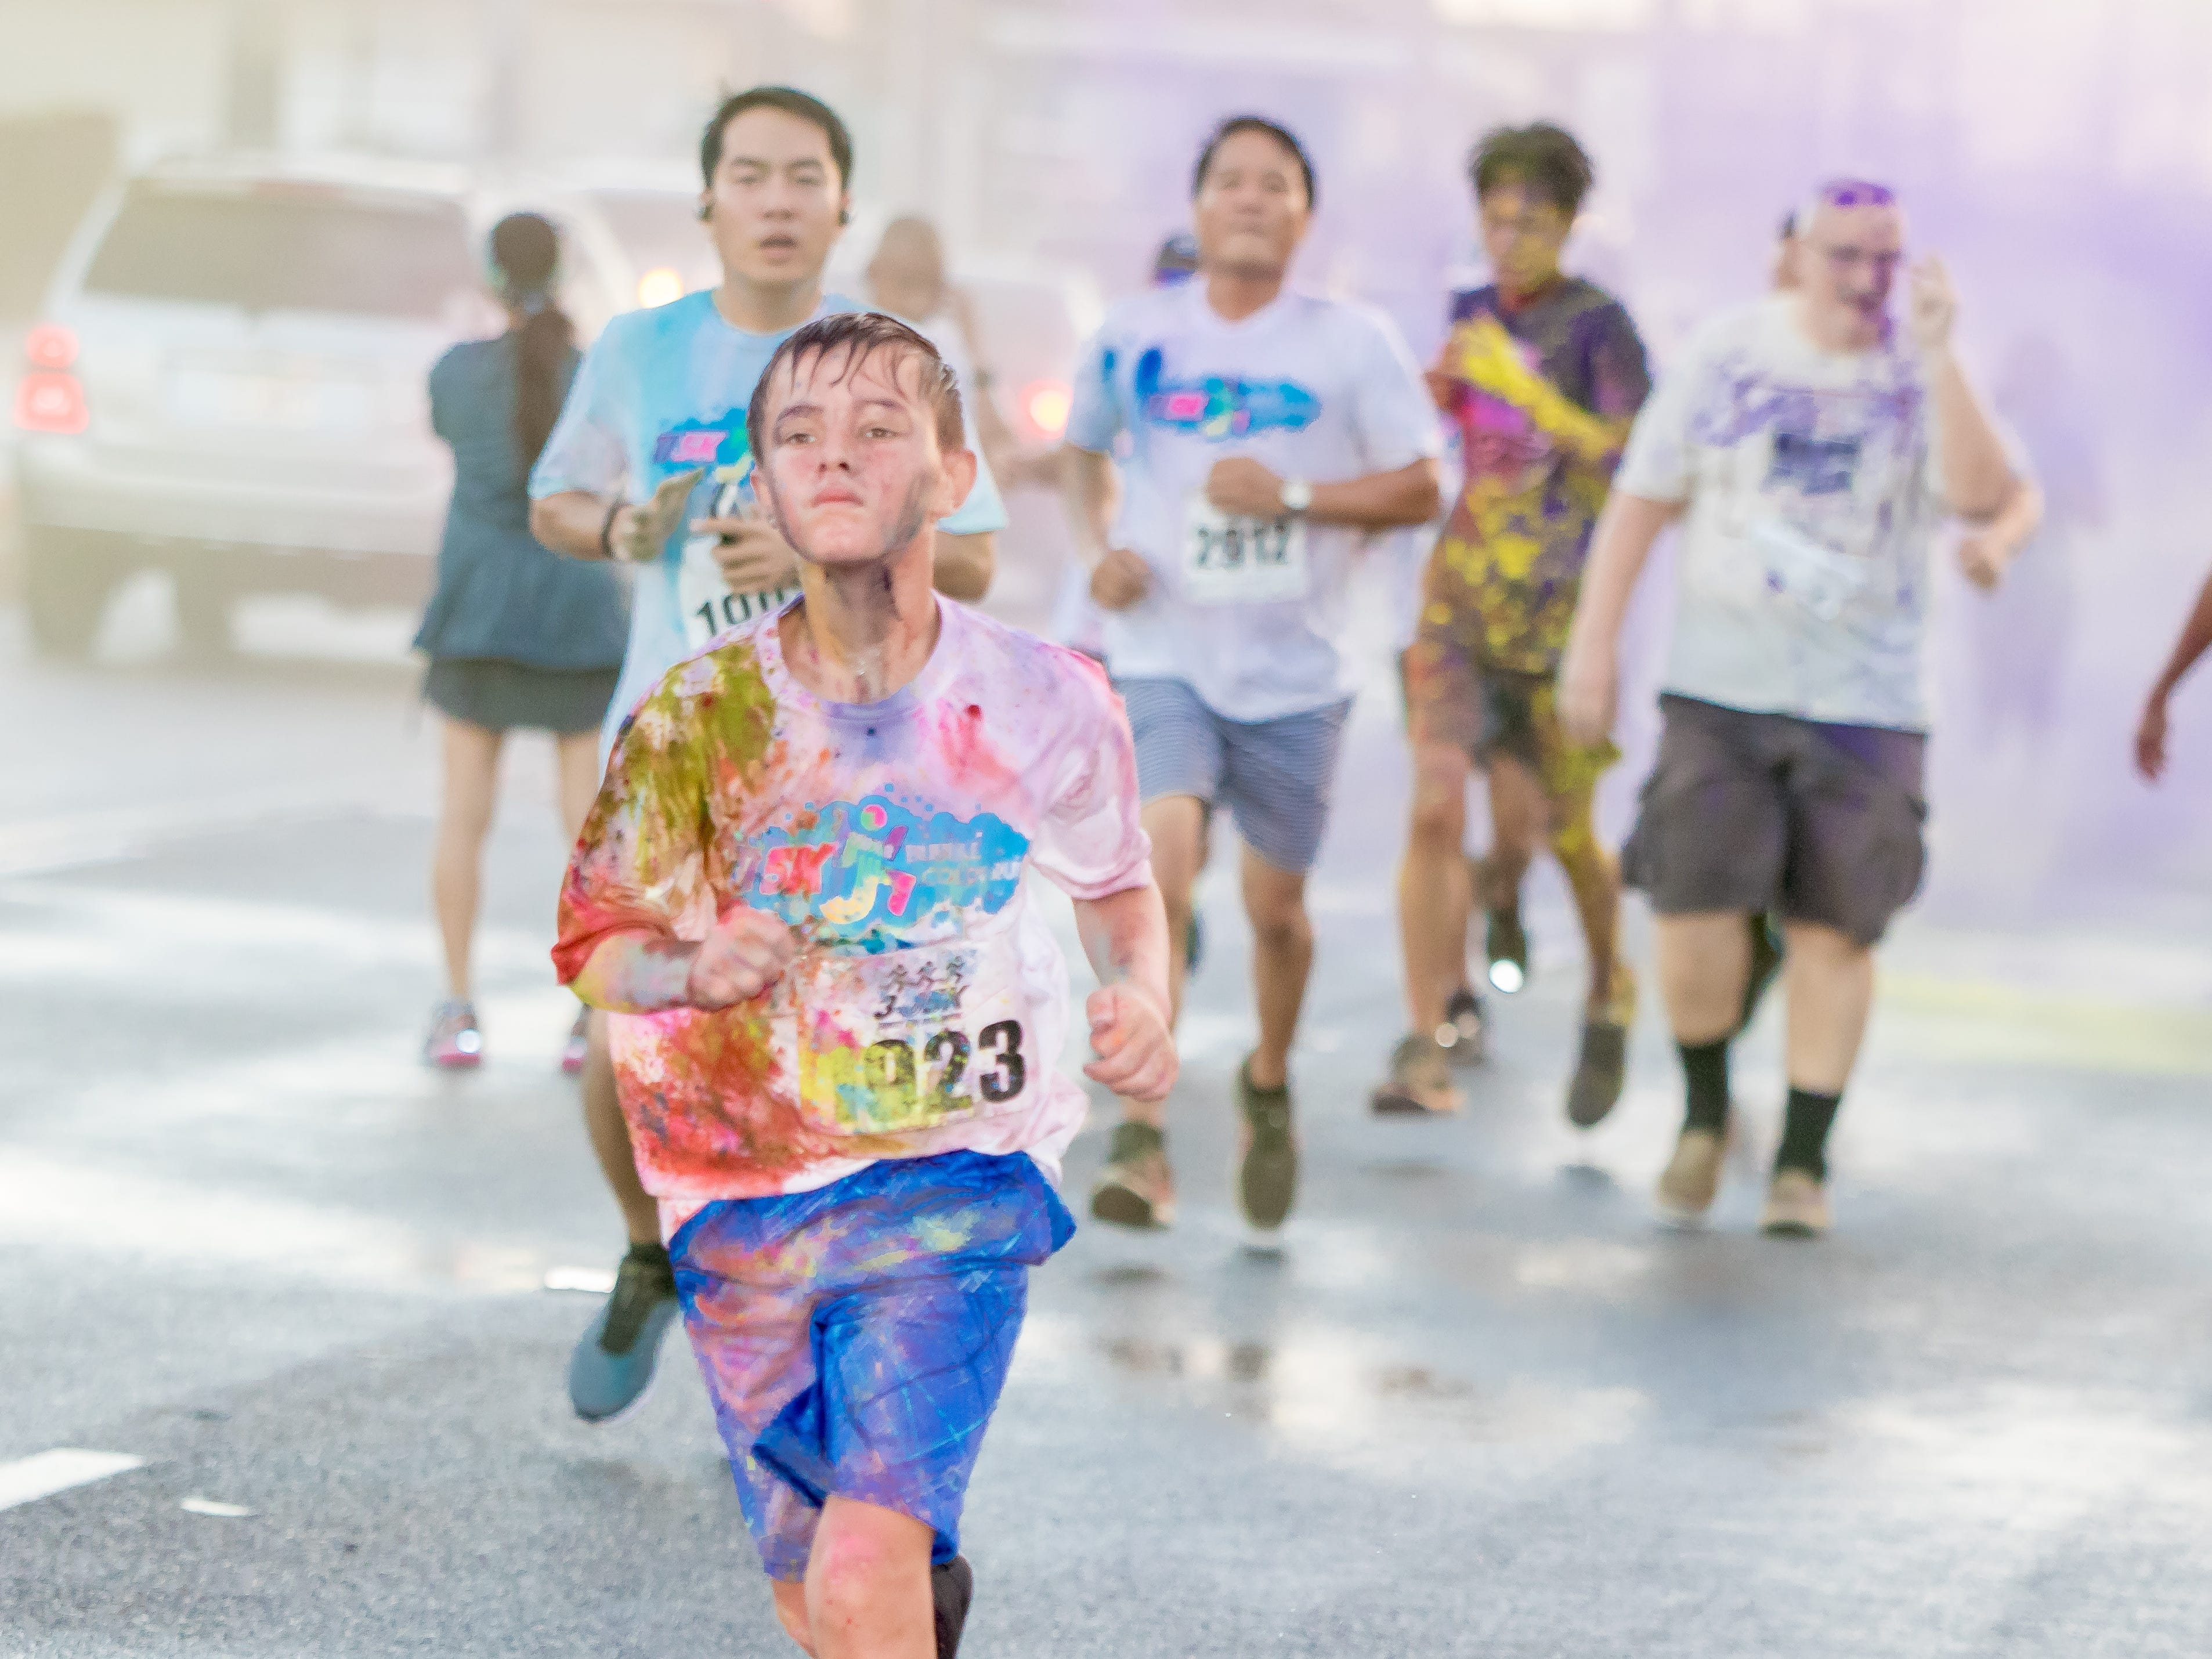 """A participants gets colorful as colored power is splashed on as they proceed the finish line during the 13th Annual Triple J Family 10K/5K Run themed the """"Bubble Color Run.""""Virgilio Valencia /For Pacific Daily News"""